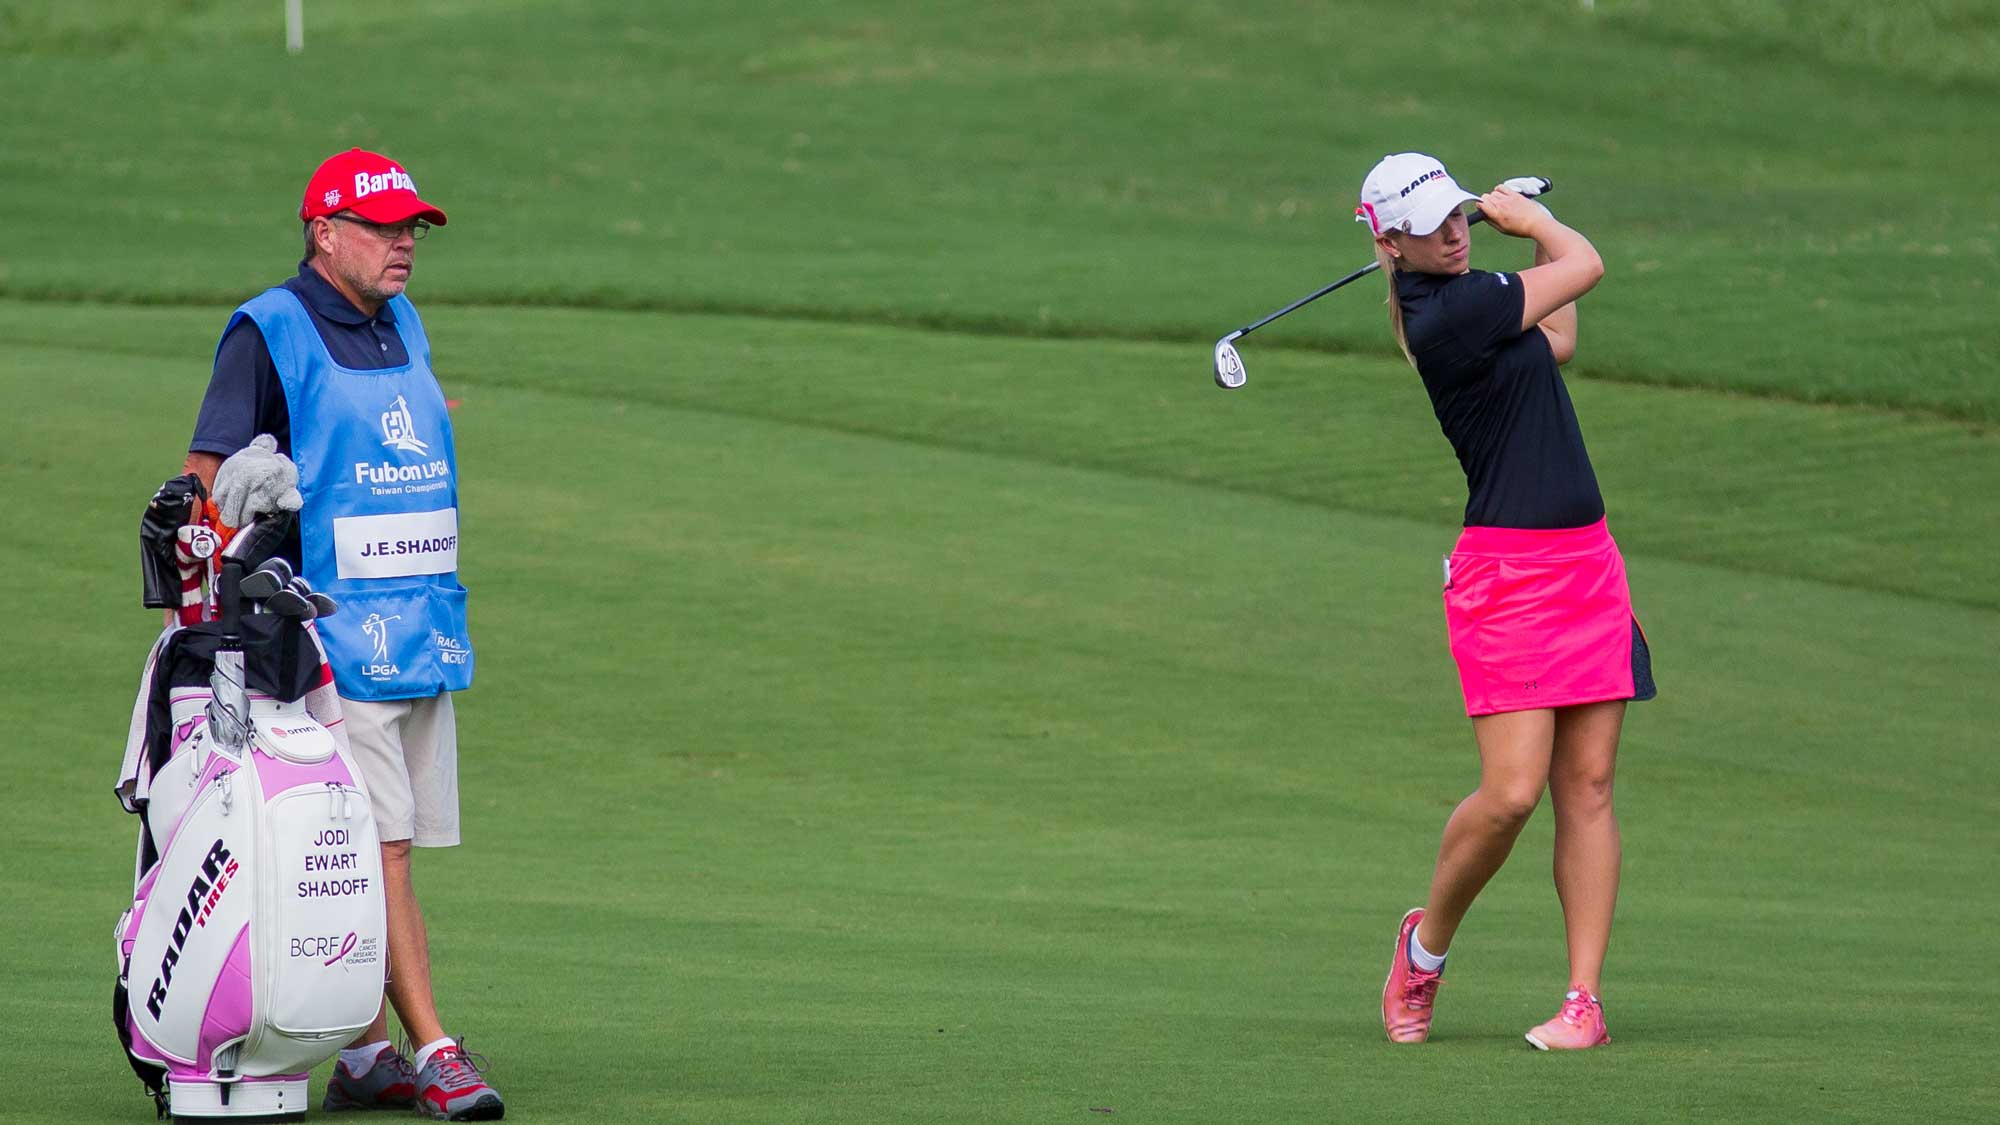 Jodi Ewart Shadoff of North Yorkshire, England plays a shot in the Fubon Taiwan LPGA Championship